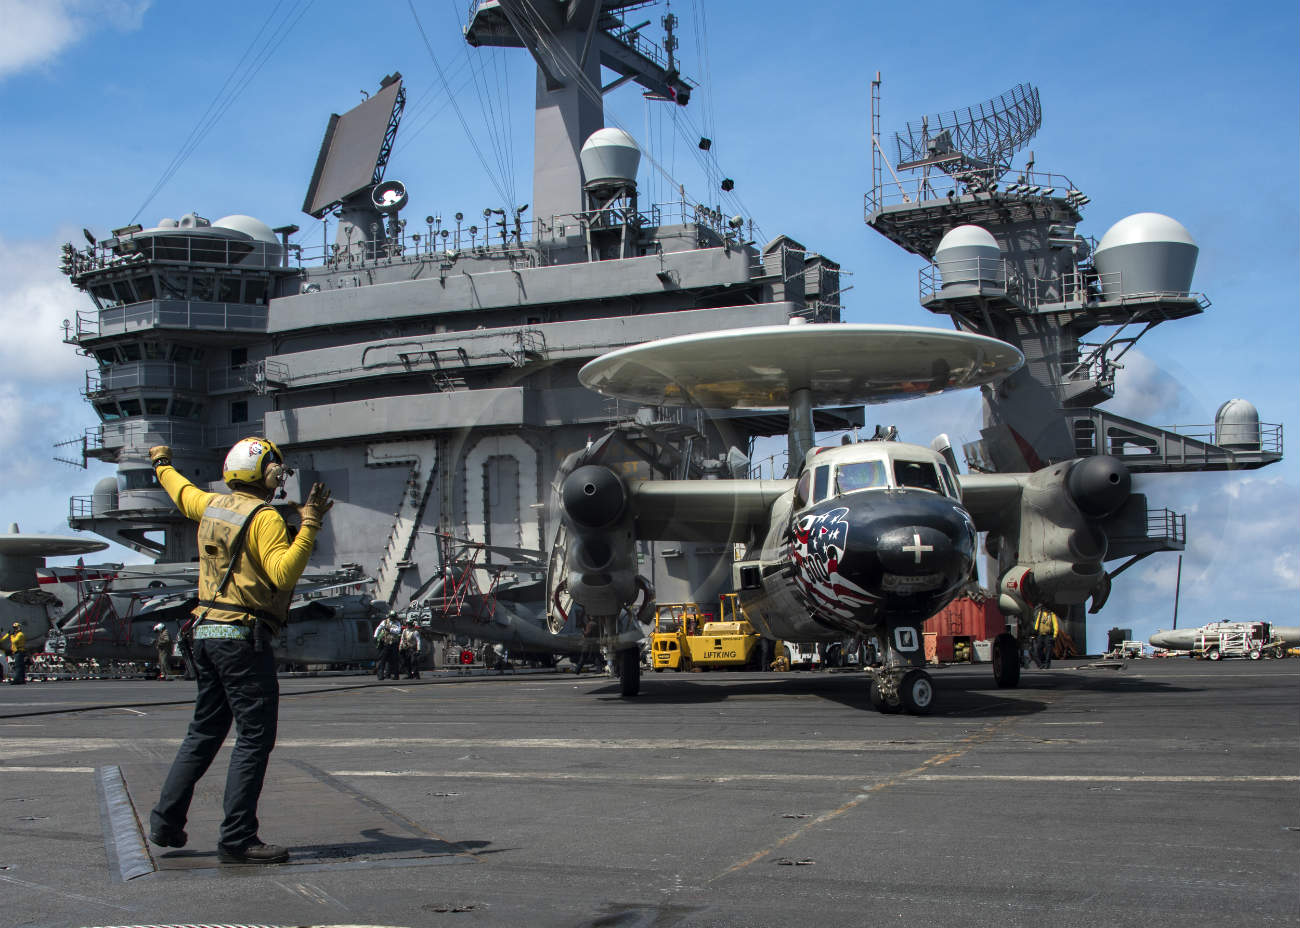 Air man directing on aircraft carrier images